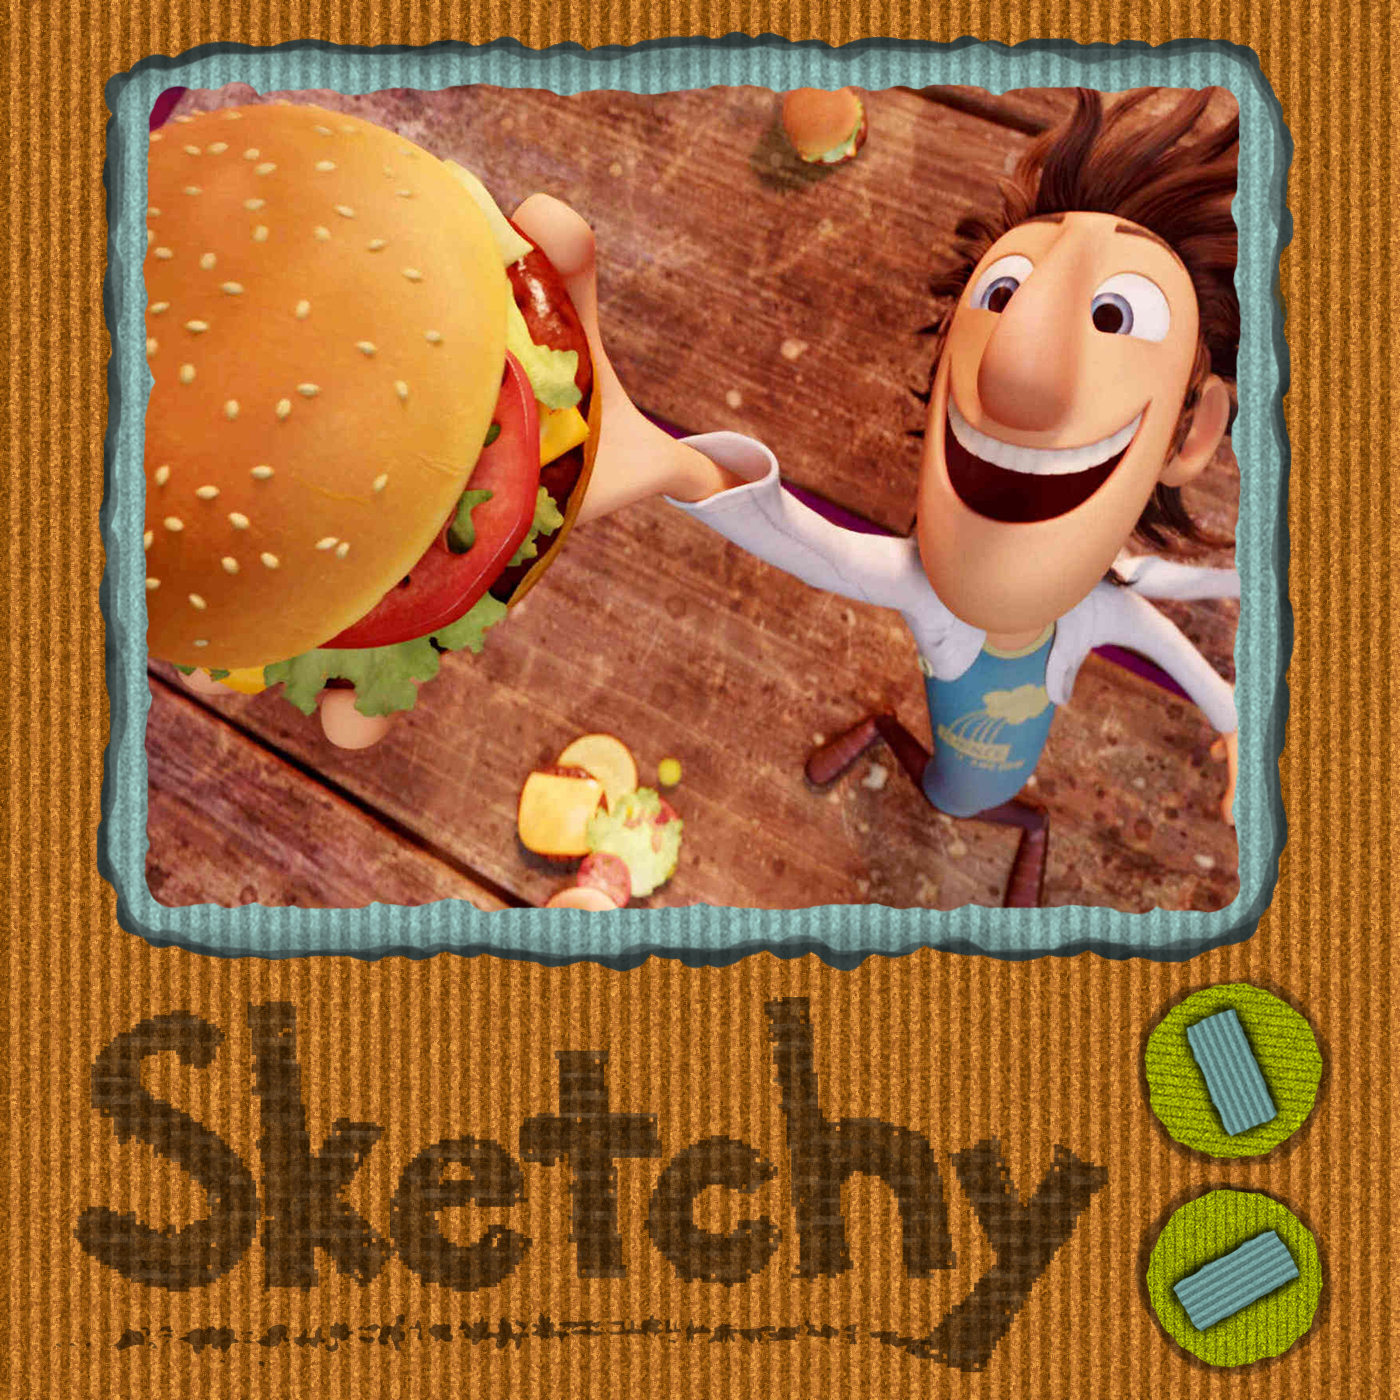 Episode 157 - Cloudy with a Chance of Meatballs